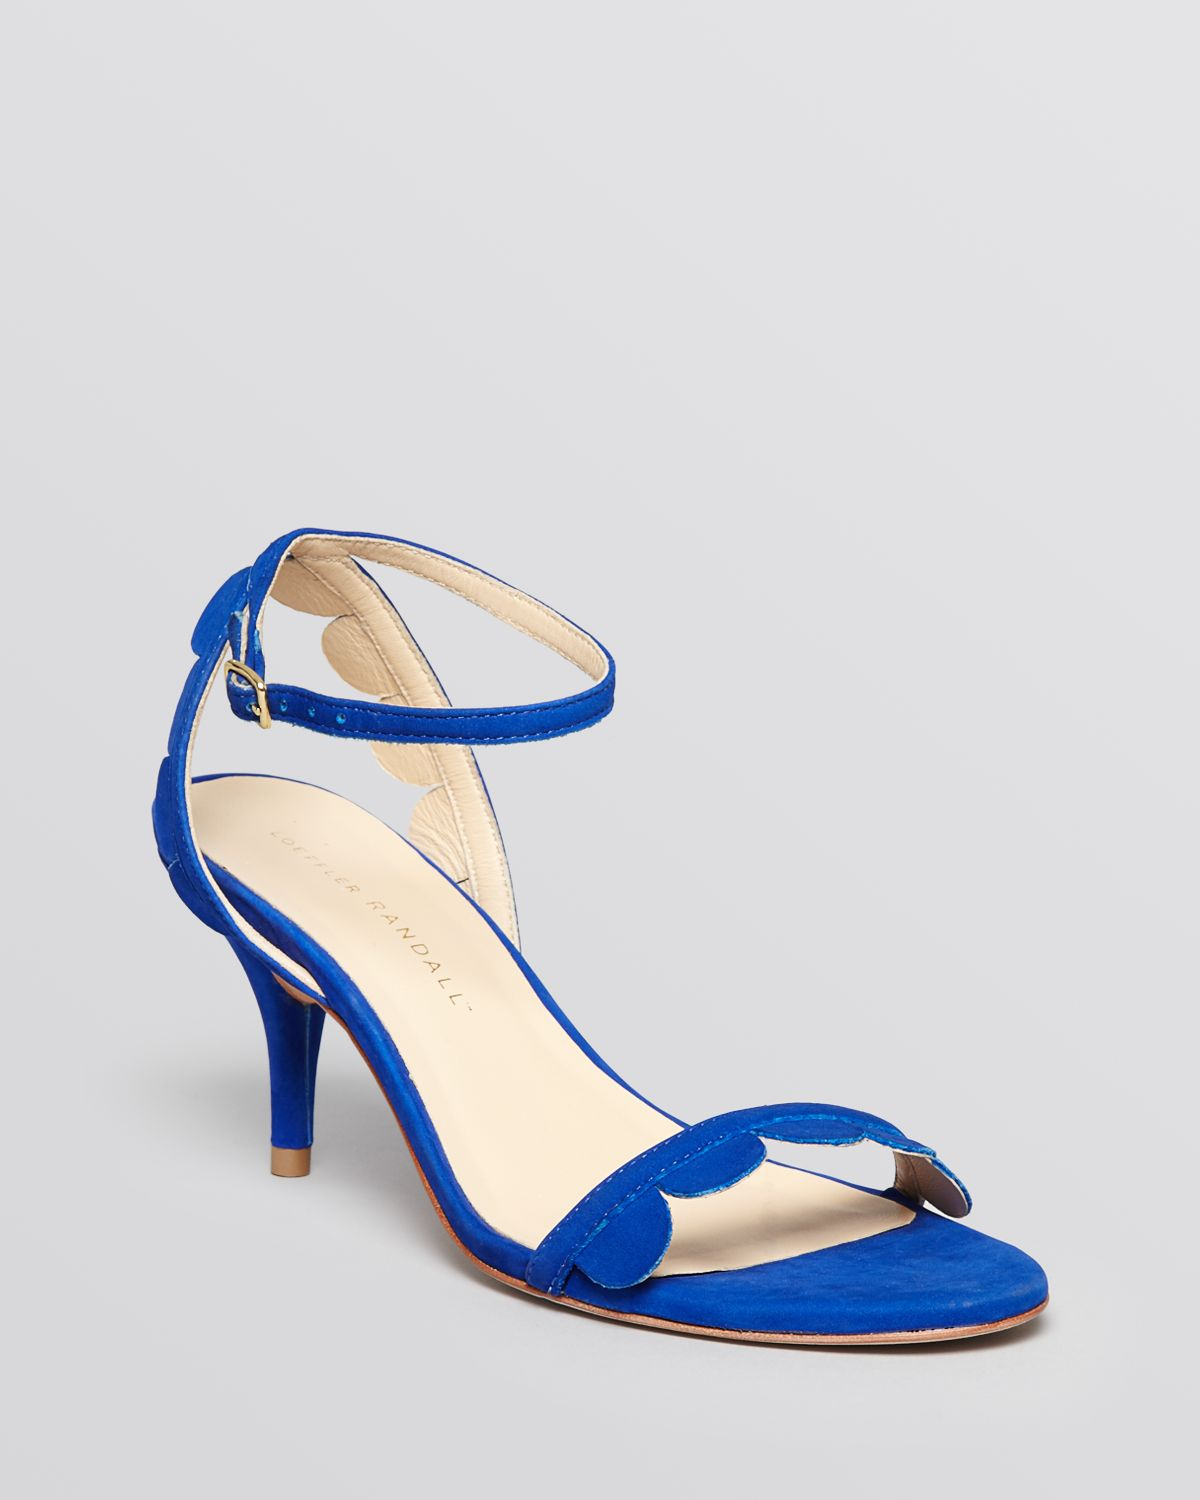 Royal Blue Sandals Heels - Is Heel